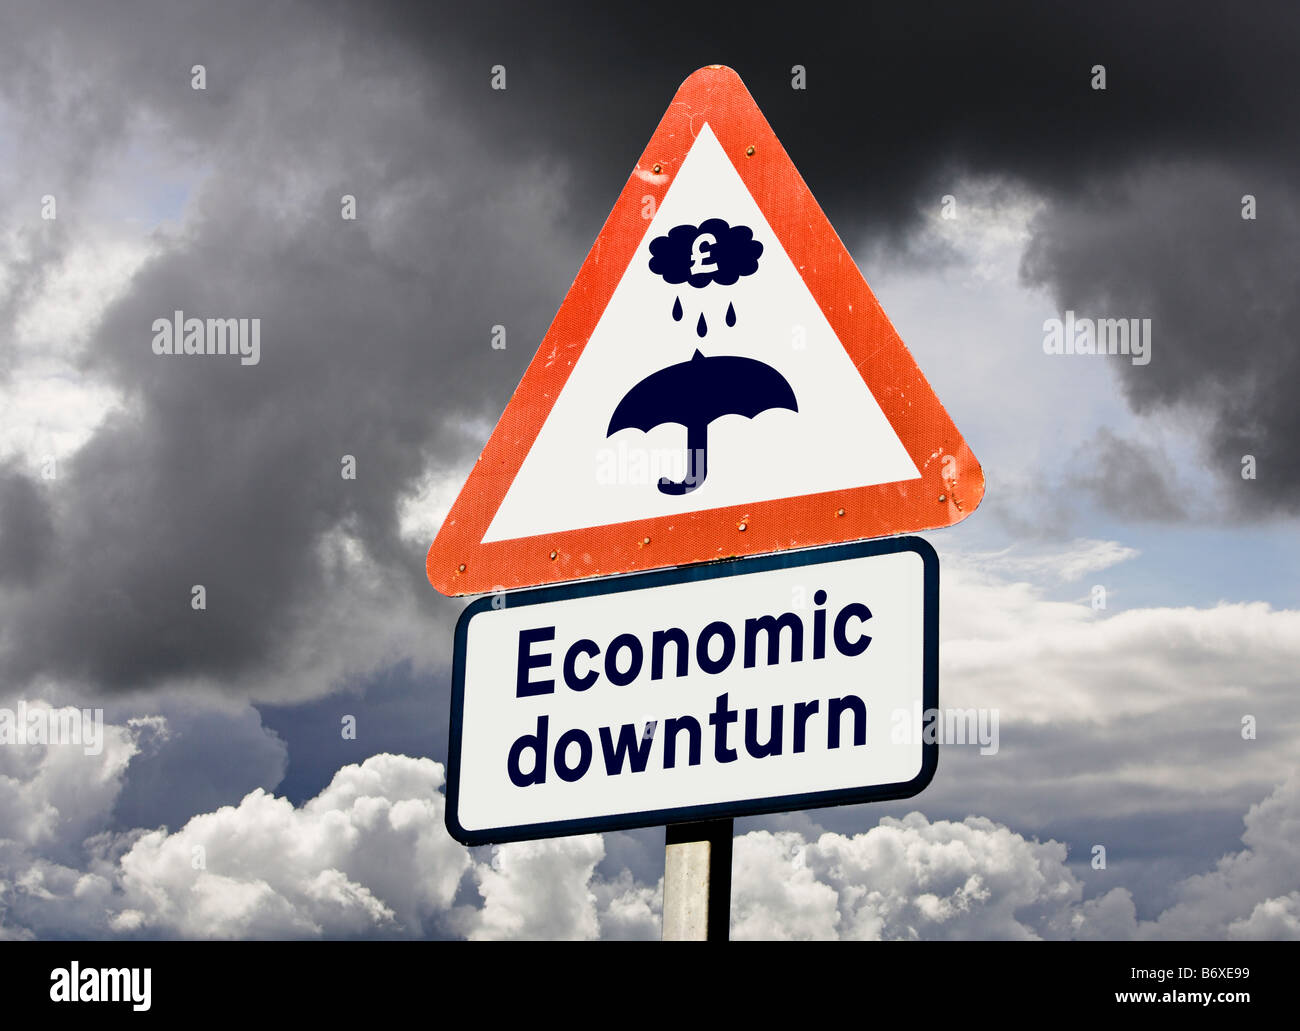 Economic downturn, recession concept UK against a stormy sky - Stock Image